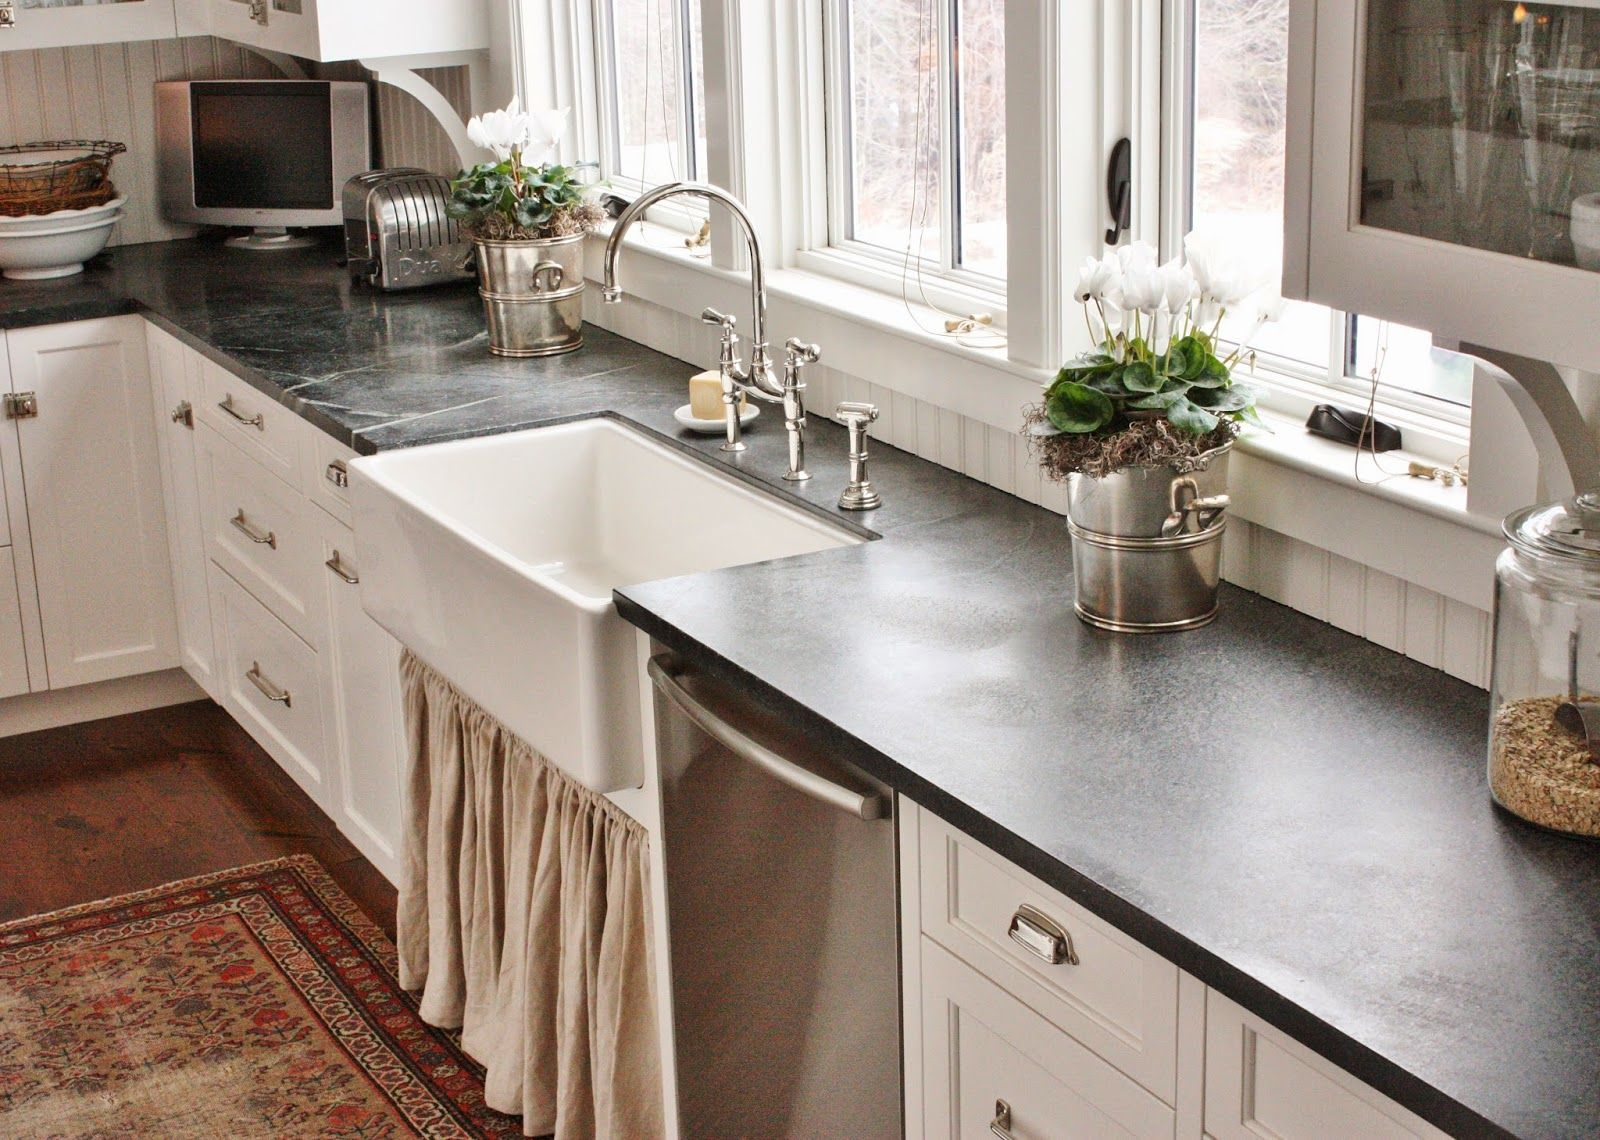 Perfect In A Perfect World, Weu0027d Install Dreamy Soapstone Or Engineered Stone For  The Perimeter Counters In Our New Kitchen. But Unless Thereu0027s A Stash Of  Union ...